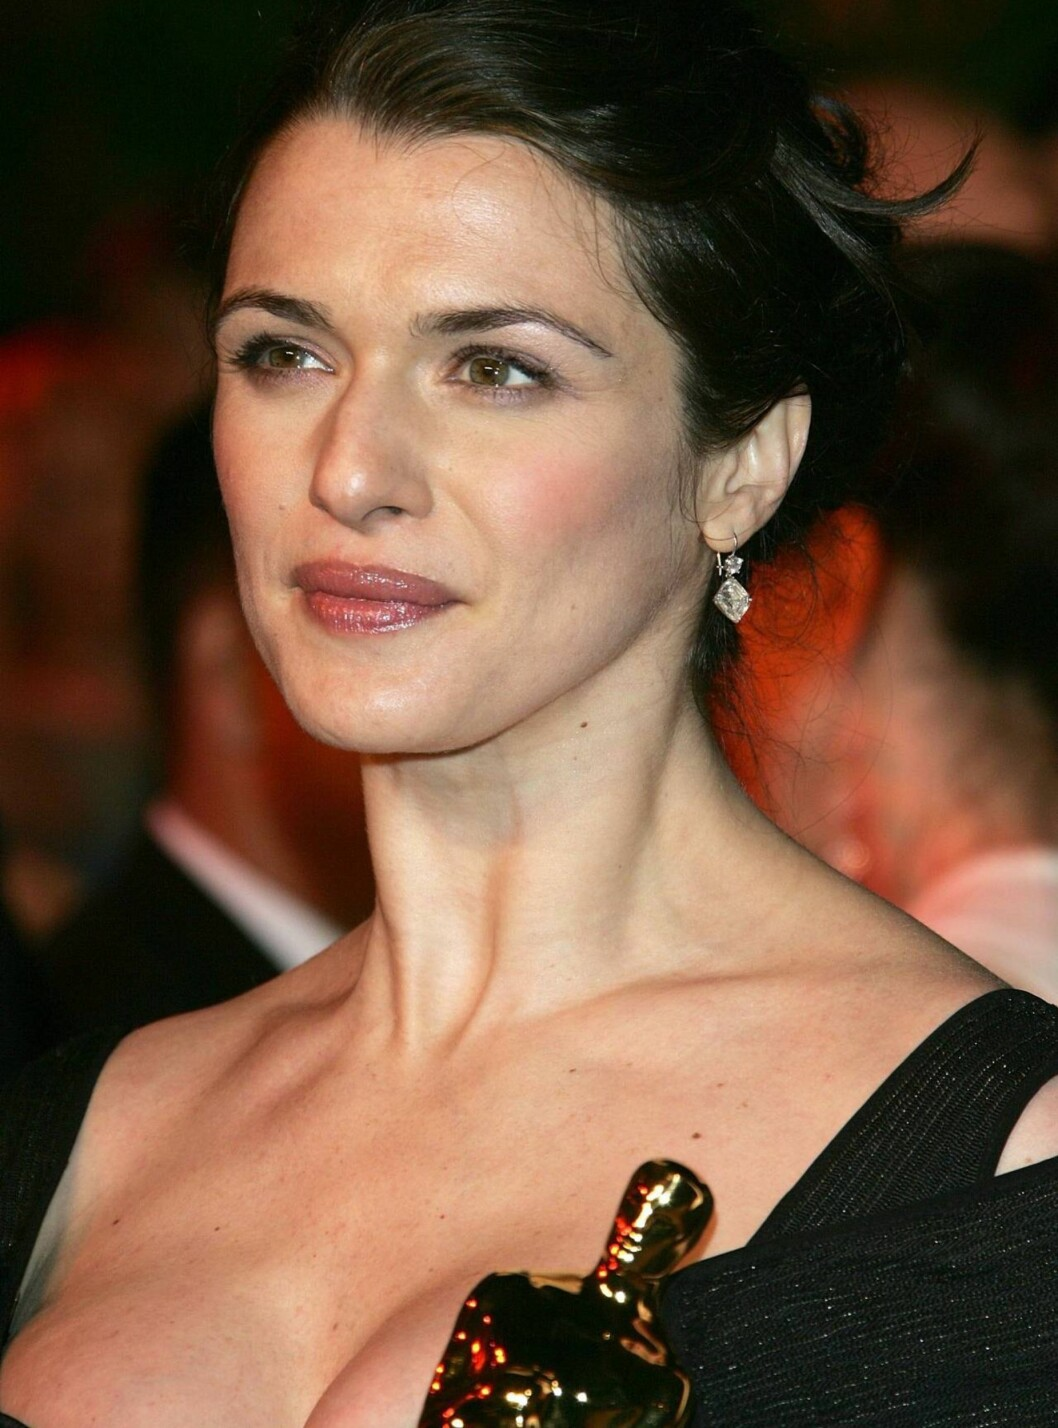 """WEST HOLLYWOOD, CA - MARCH 05:  Actress Rachel Weisz with her award for Best Supporting Actress in a Leading Role for """"The Constant Gardener"""" arrives at the Vanity Fair Oscar Party at Mortons on March 5, 2006 in West Hollywood, California.  (Photo by Evan Foto: All Over Press"""